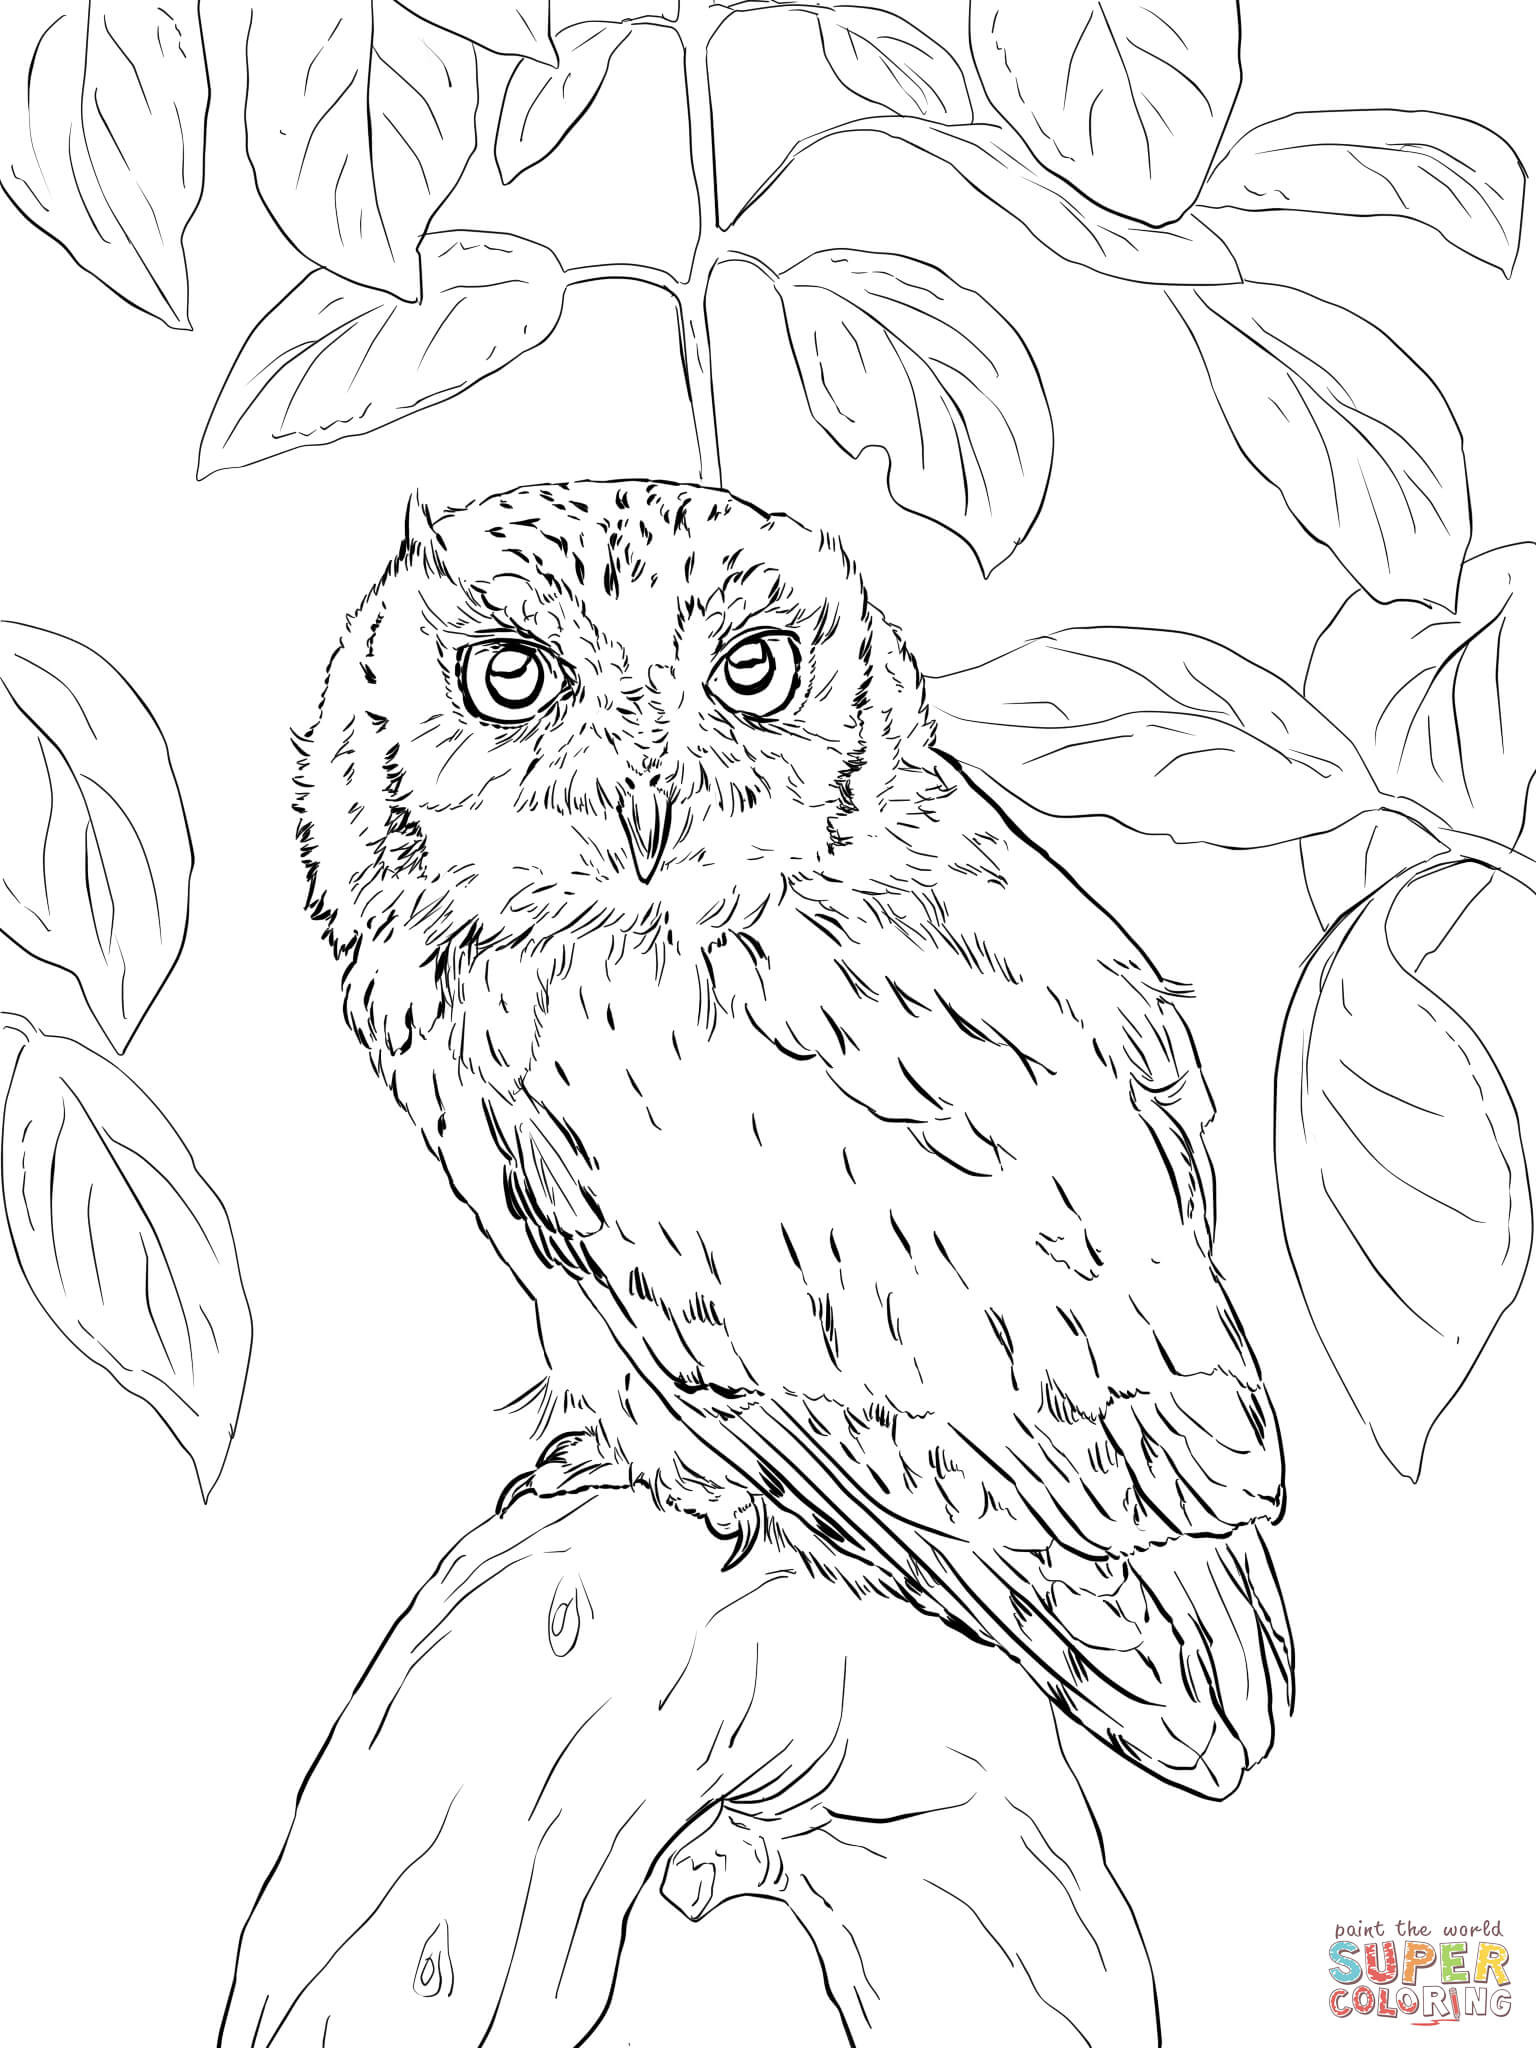 picture of owls to color cute owl coloring page free printable coloring pages picture to color of owls